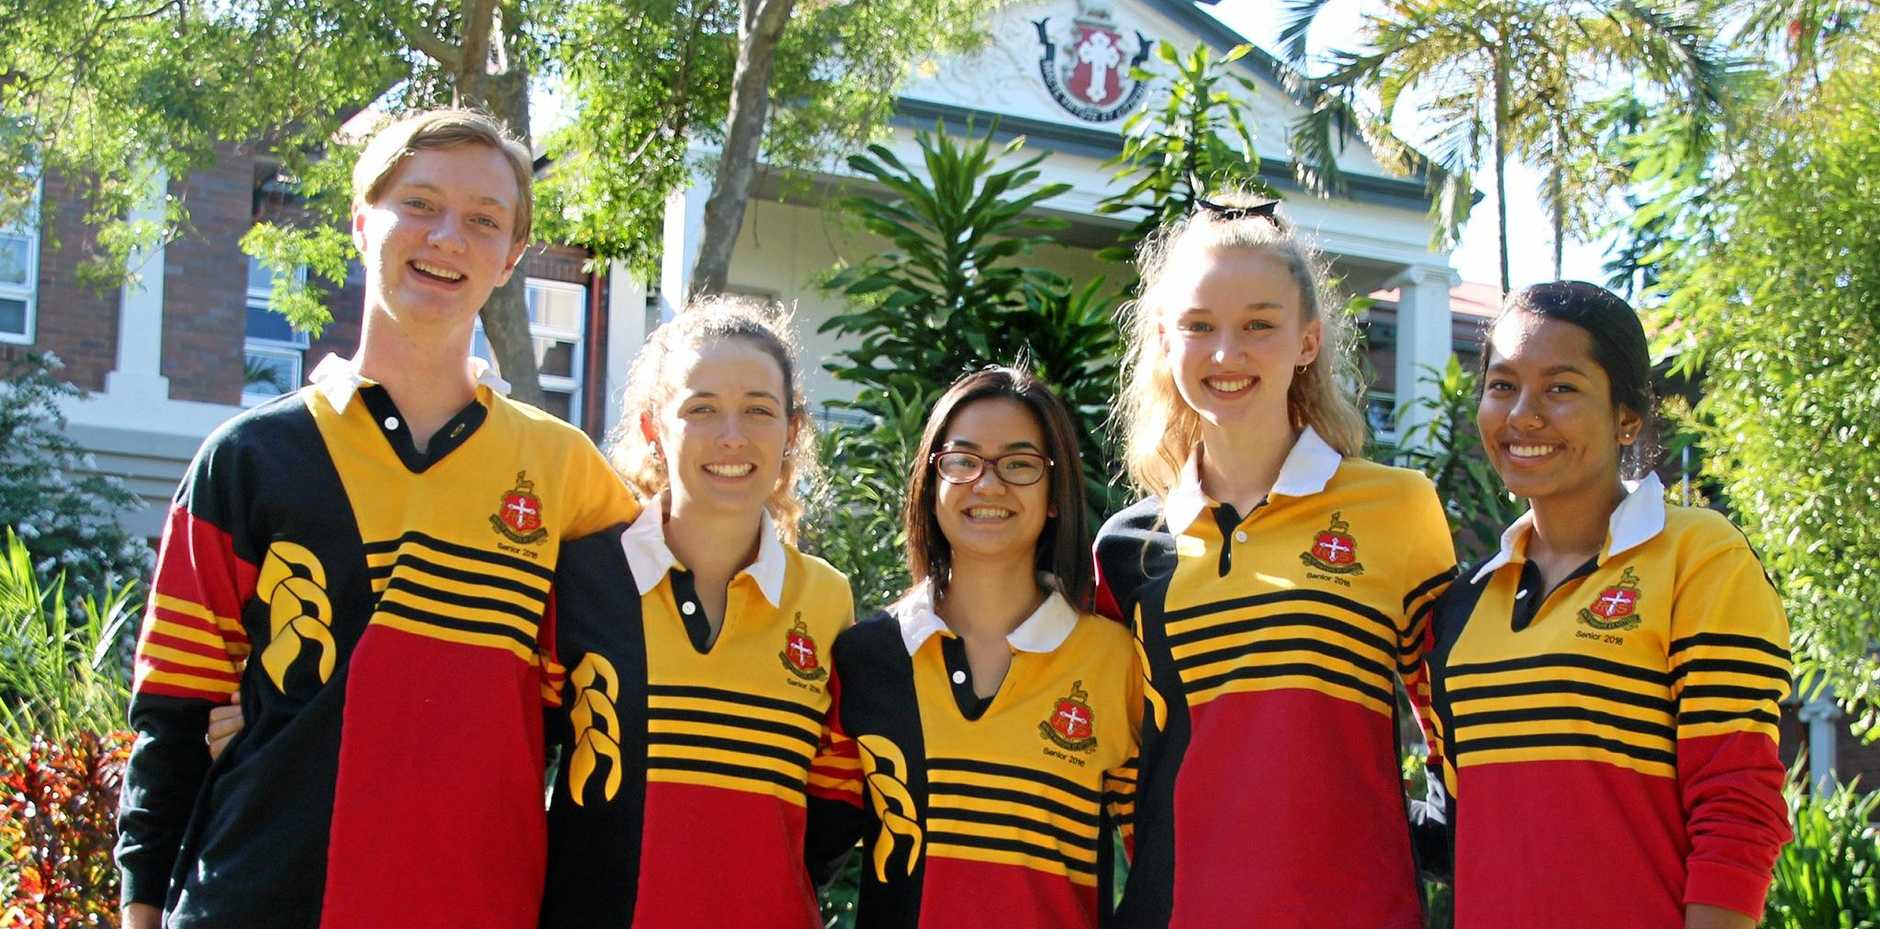 The Rockhampton Grammar School's OP 1 students Tomas Beak, Sarah MacKenzie, Emma Wong, Gabrielle Matthews and Aniqa Hussain celebrate their results on Saturday.